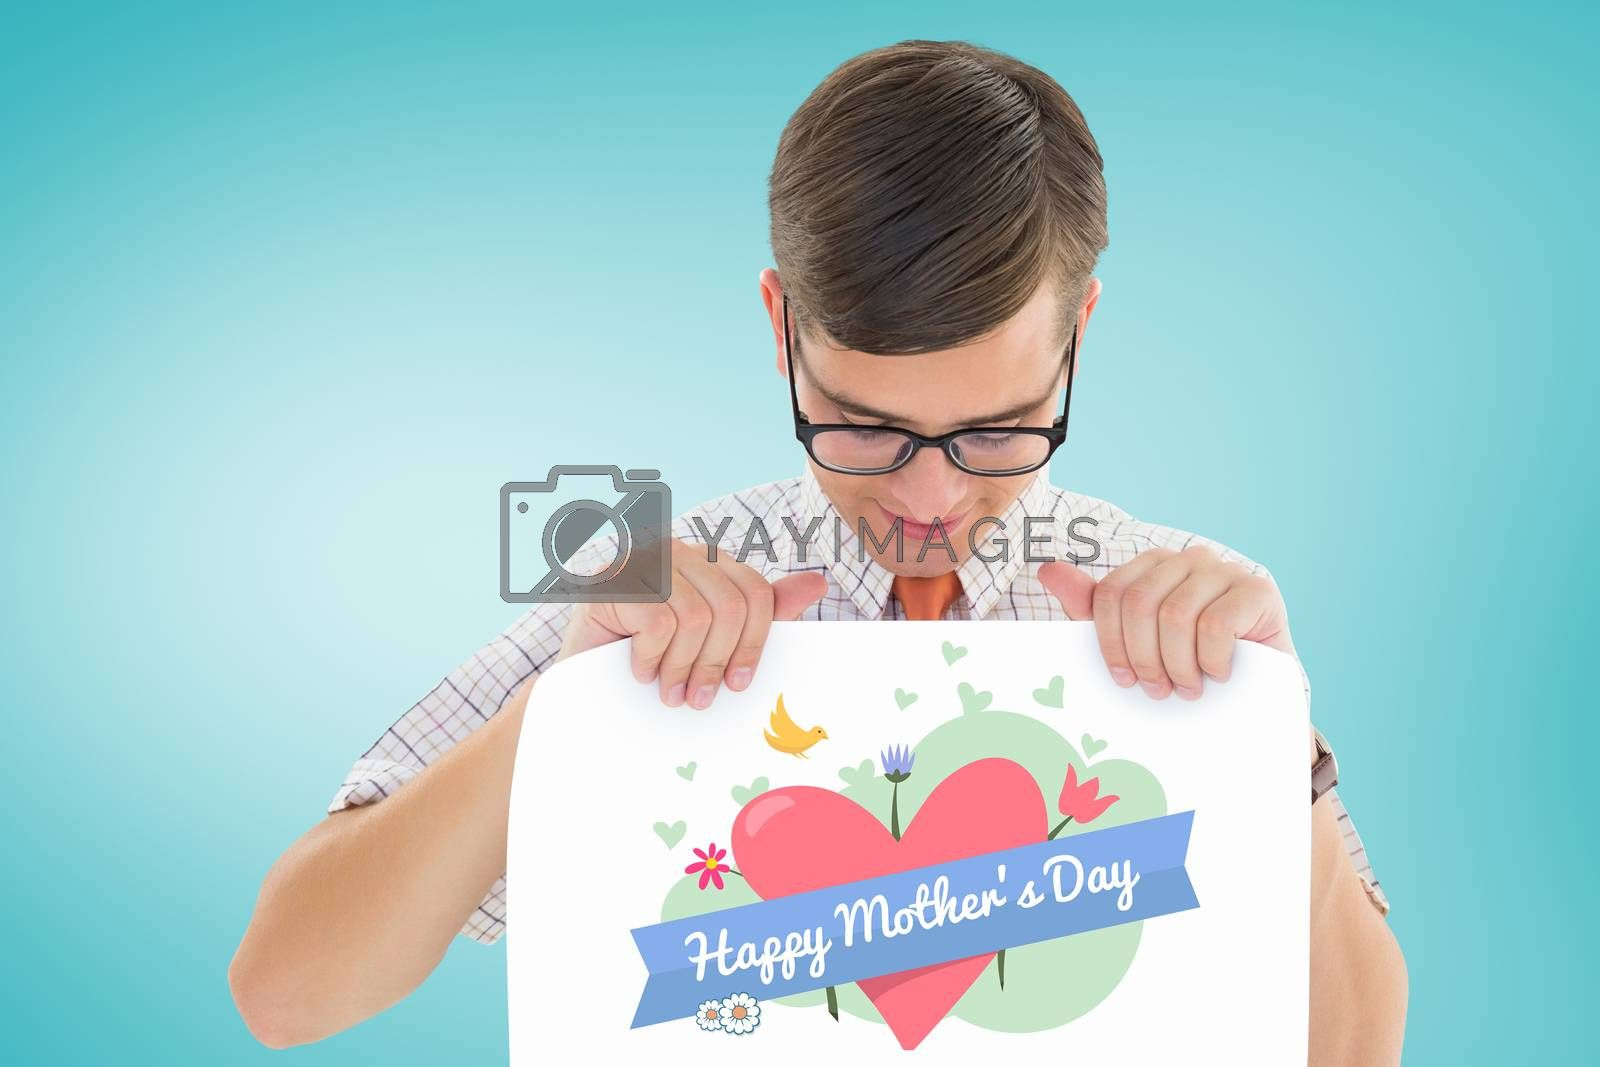 Geeky hipster smiling and showing card against blue vignette background